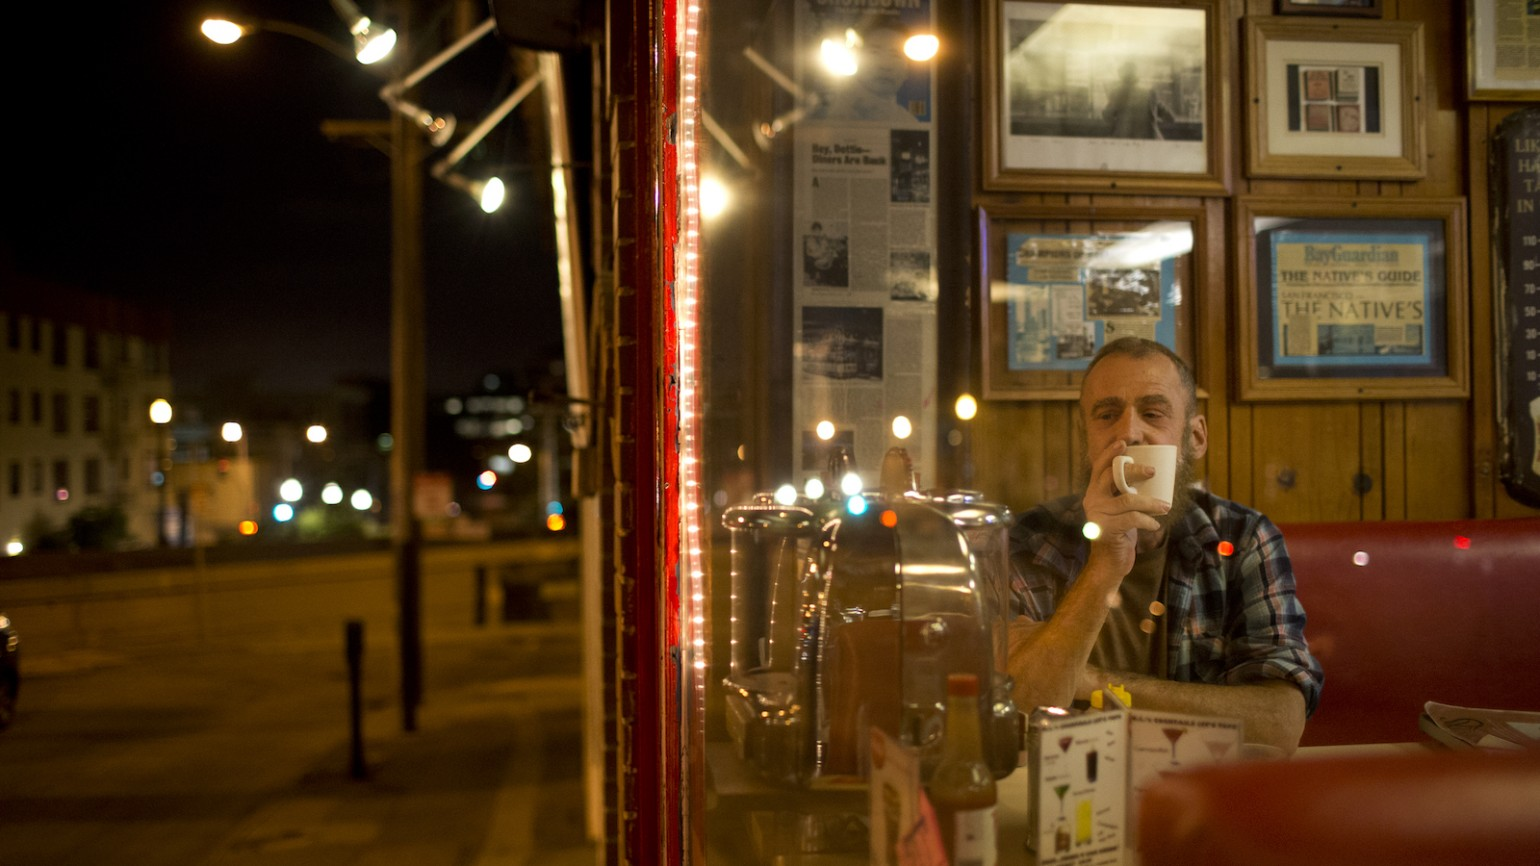 Peter Greene has a cup of coffee and pancakes at It's Tops Coffee Shop on Market Street following a night of singing songs accompanied by friends on the piano at Martuni's on in San Francisco, Calif. on Tuesday, September 22, 2015. (Photo by Tim Hussin)